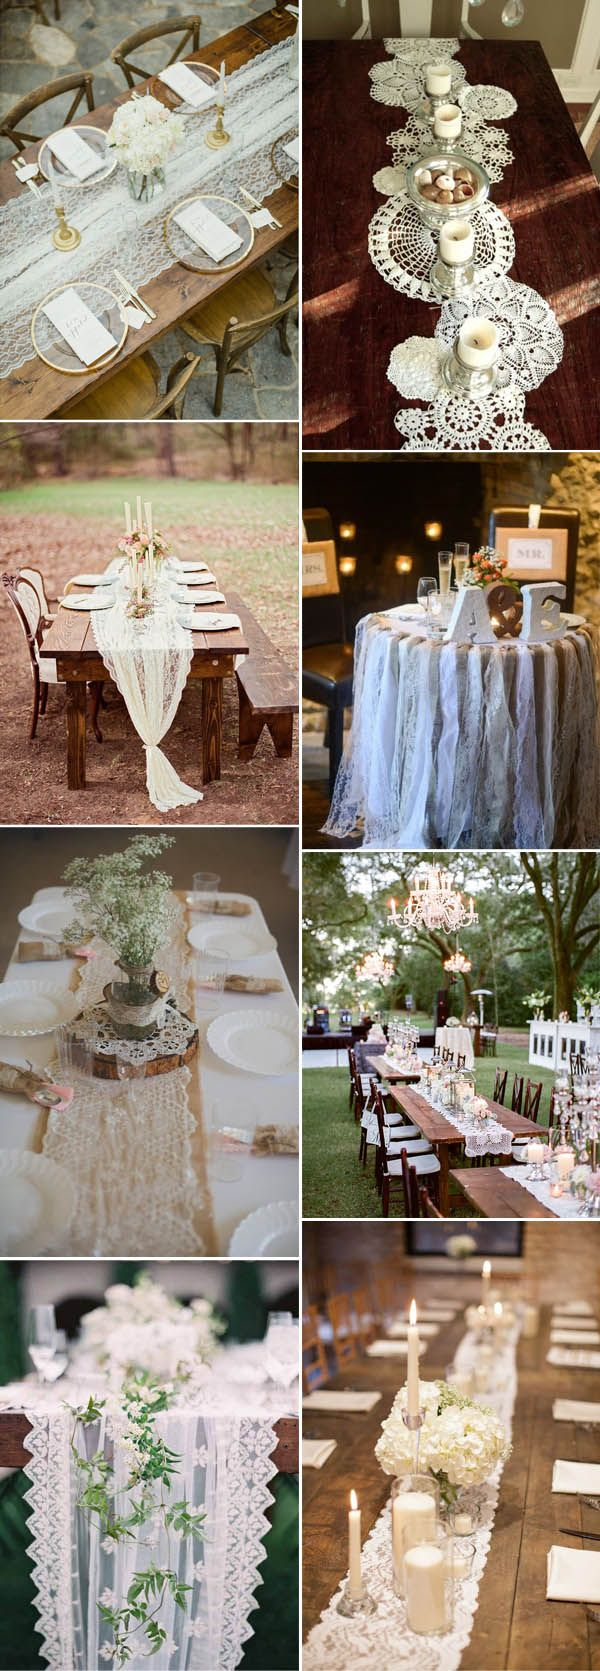 50 great ideas to incoporate lace into your vintage weddings wedding table runnerslace